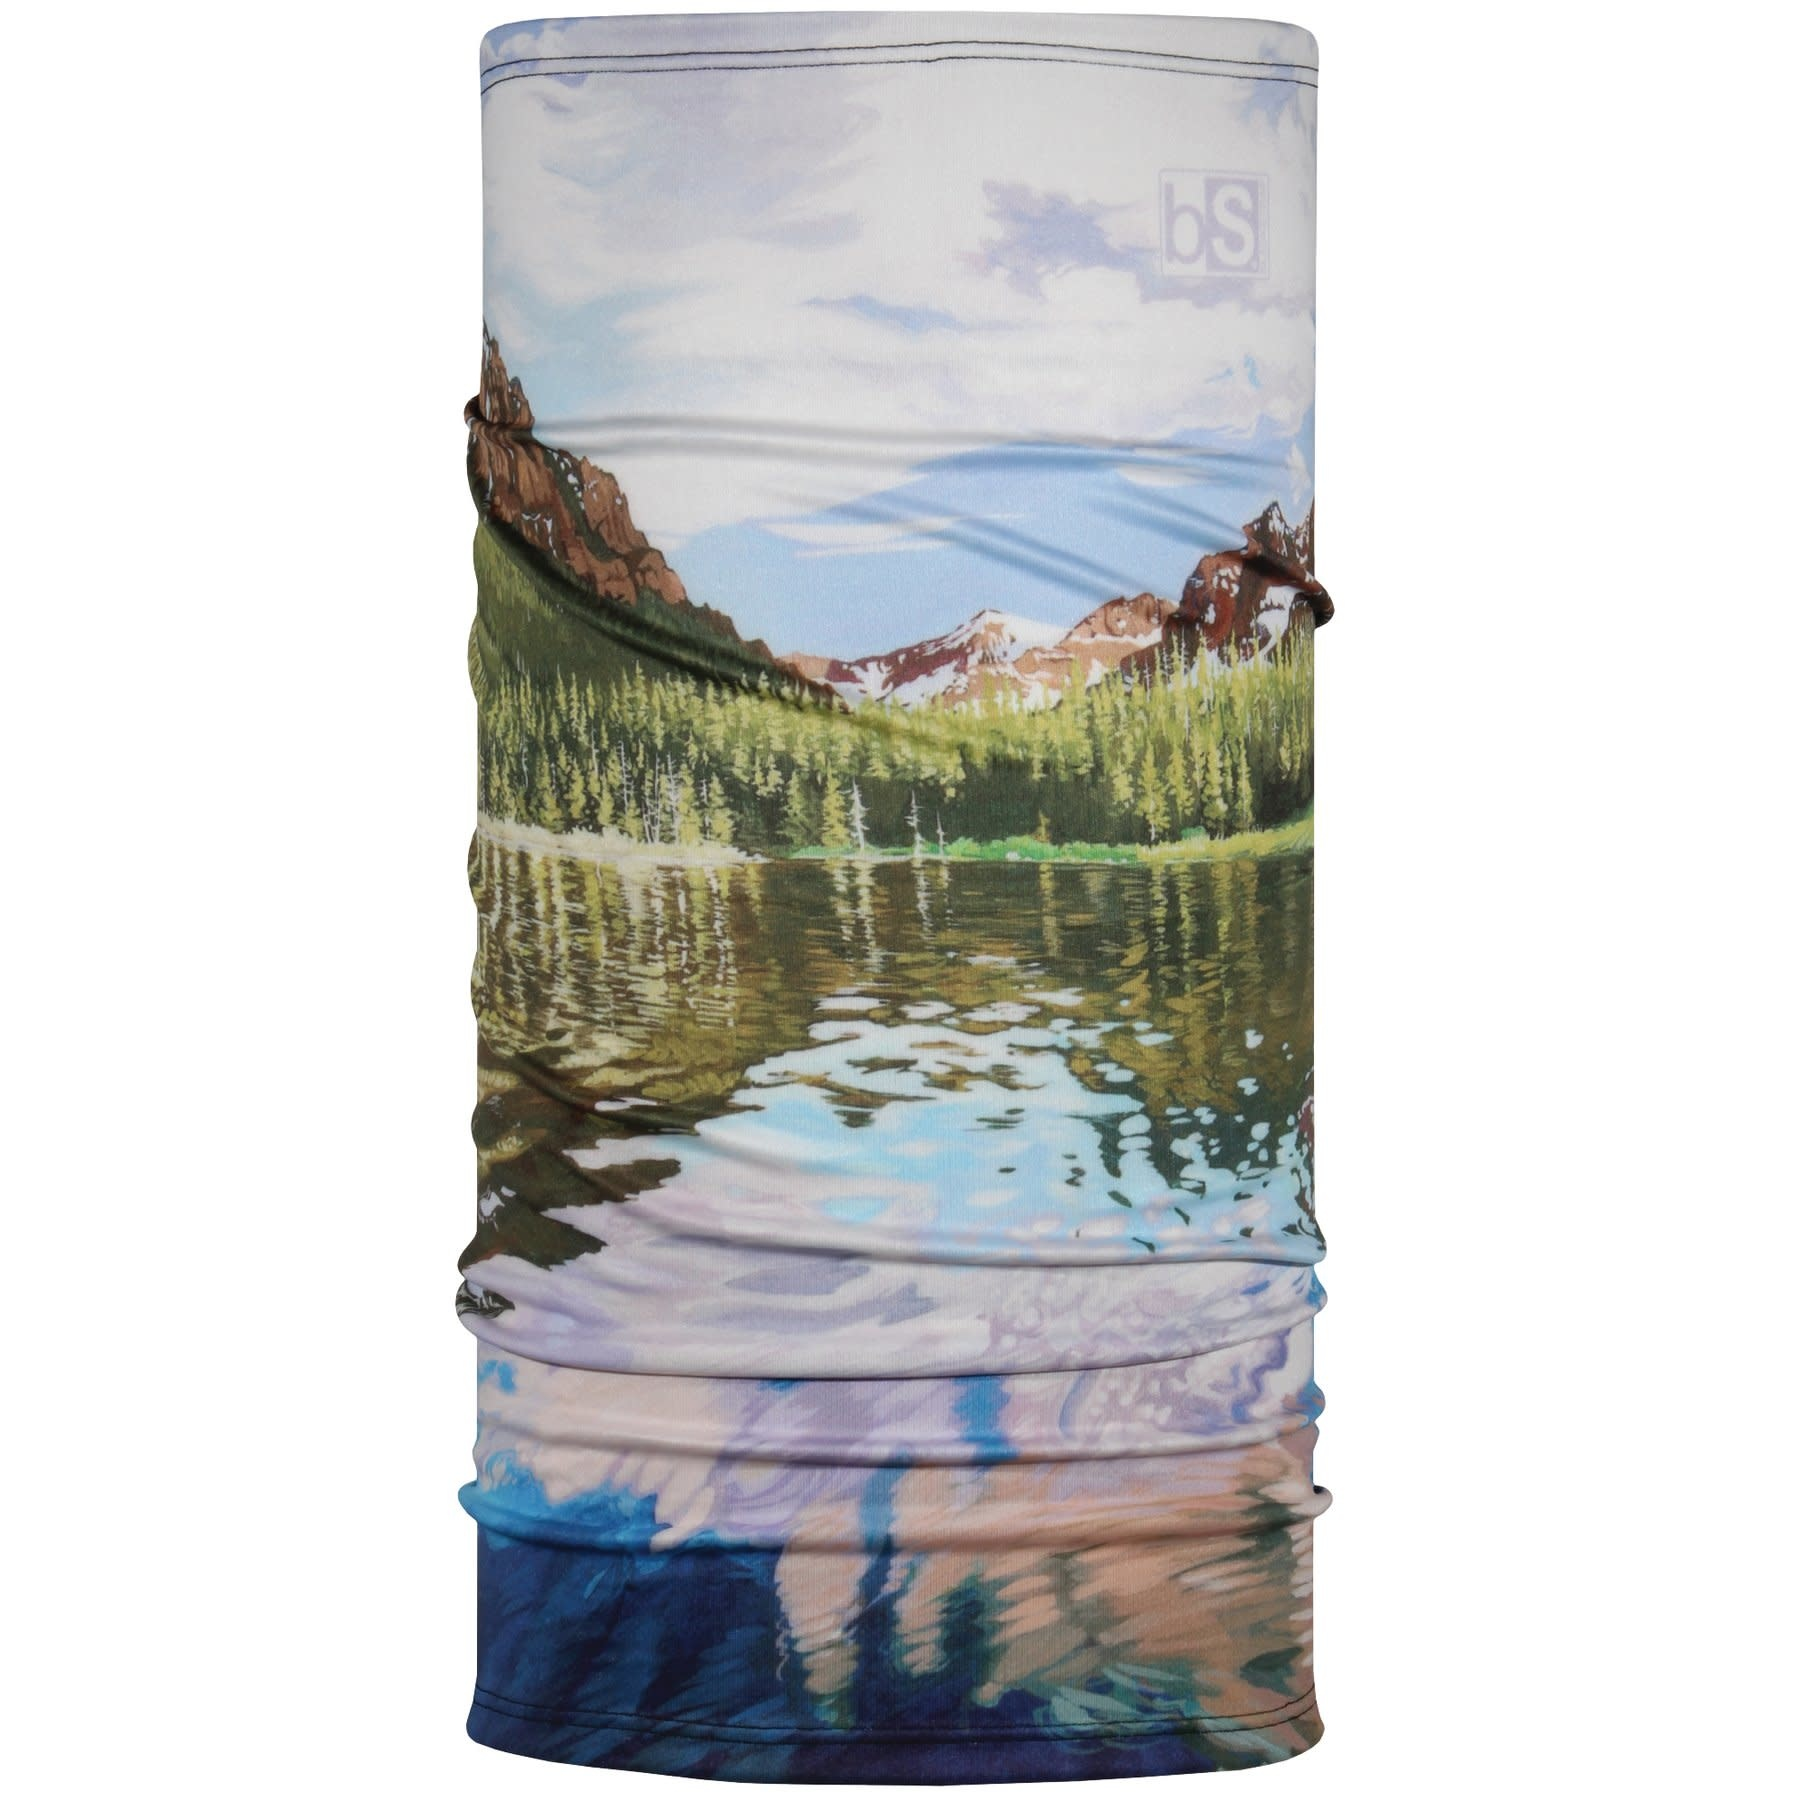 Blackstrap Industries Daily Tube Artist Series: Rachel Pohl Hyalite Reflection